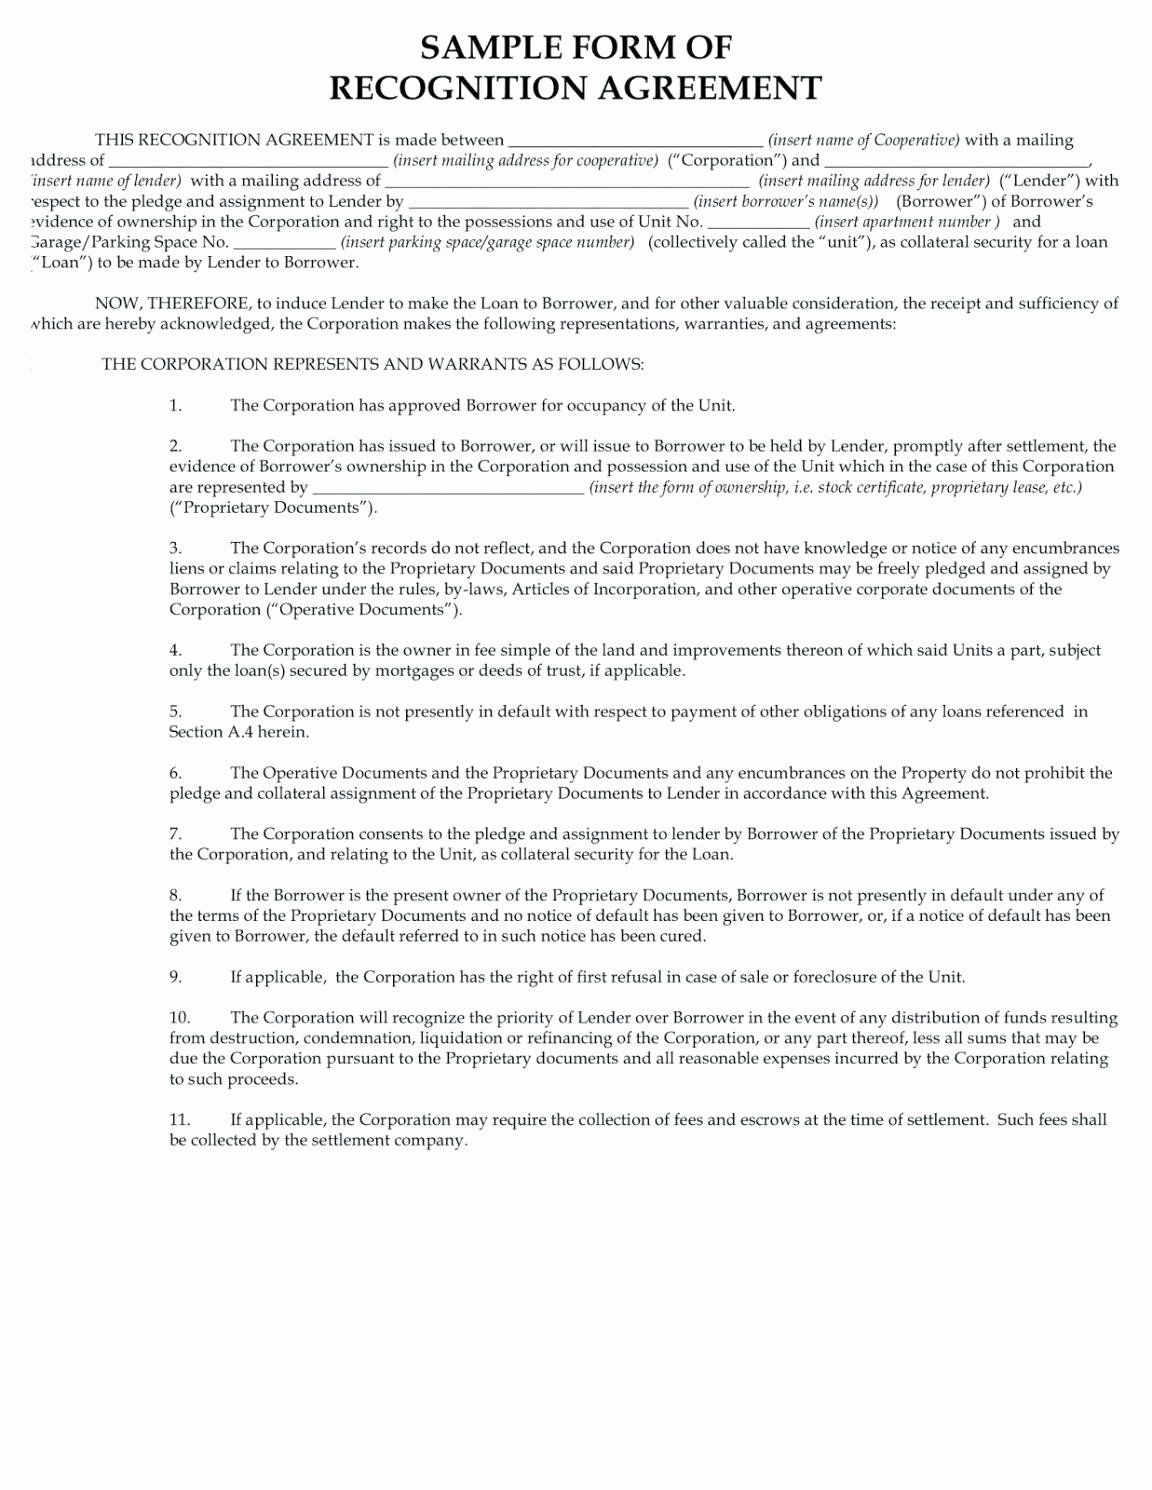 Saas Reseller Agreement Template Lovely Holder Agreement Template Australia Templates Agreement Agreement Quote Contract Template